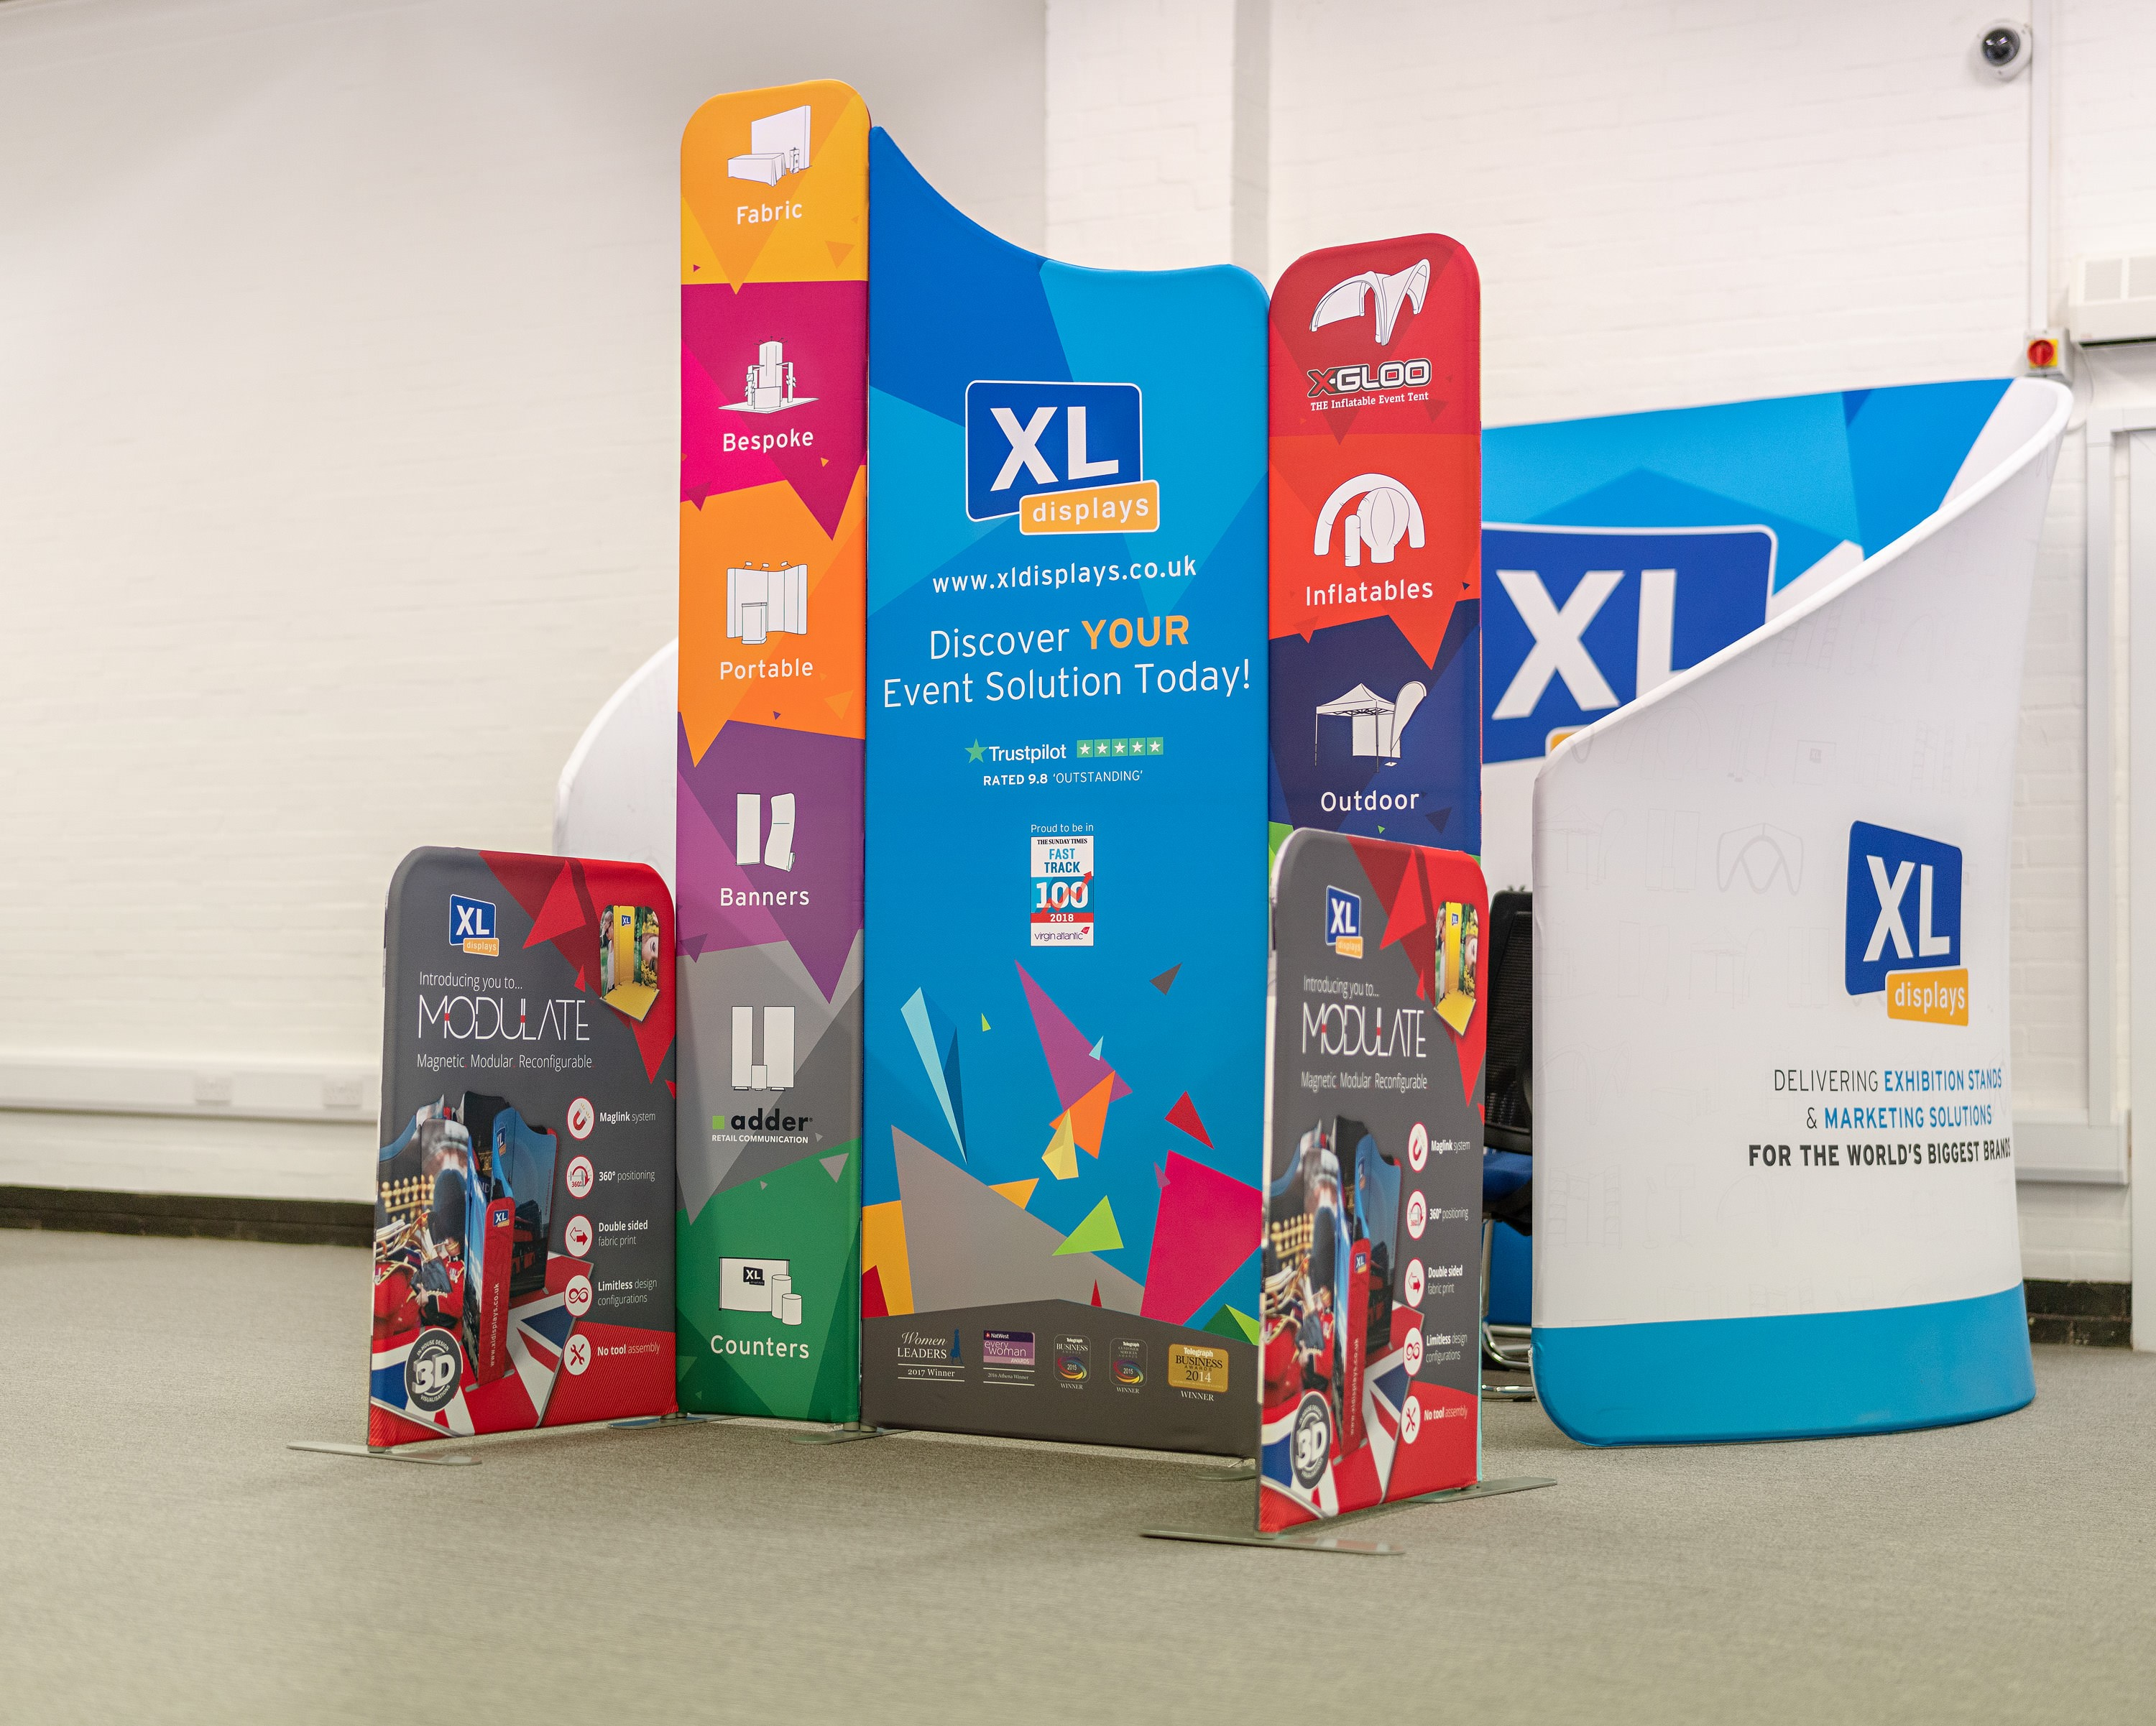 We Print the Fabric Graphics for Each Modulate™ Exhibition Stand In-House Using a Dye-Sublimation Printing Technique for Maximum Quality